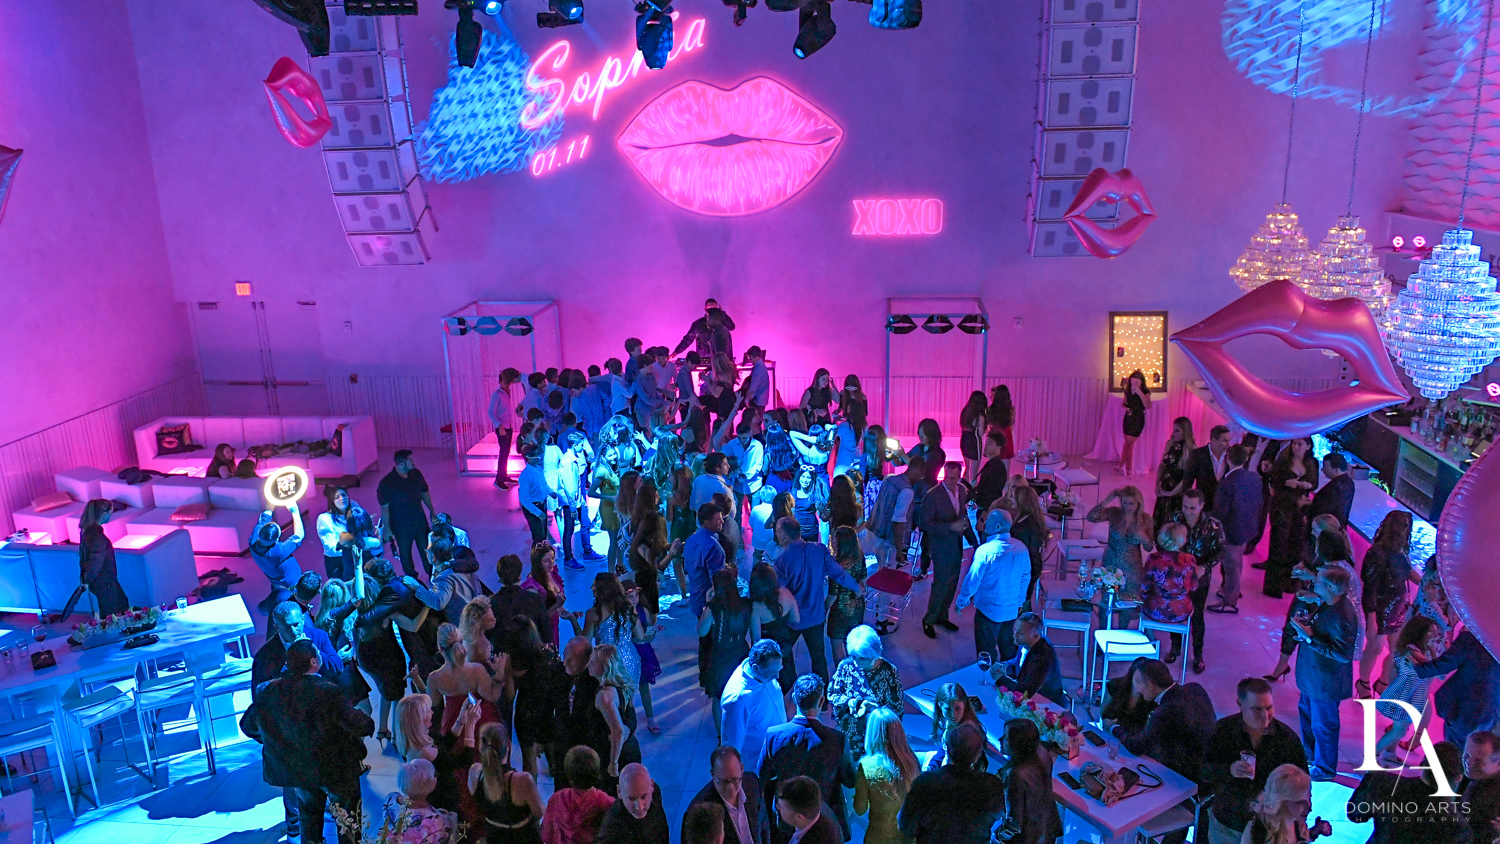 neon party at Pink XO Bat Mitzvah at The Venue Crystal Ballroom by Domino Arts Photography